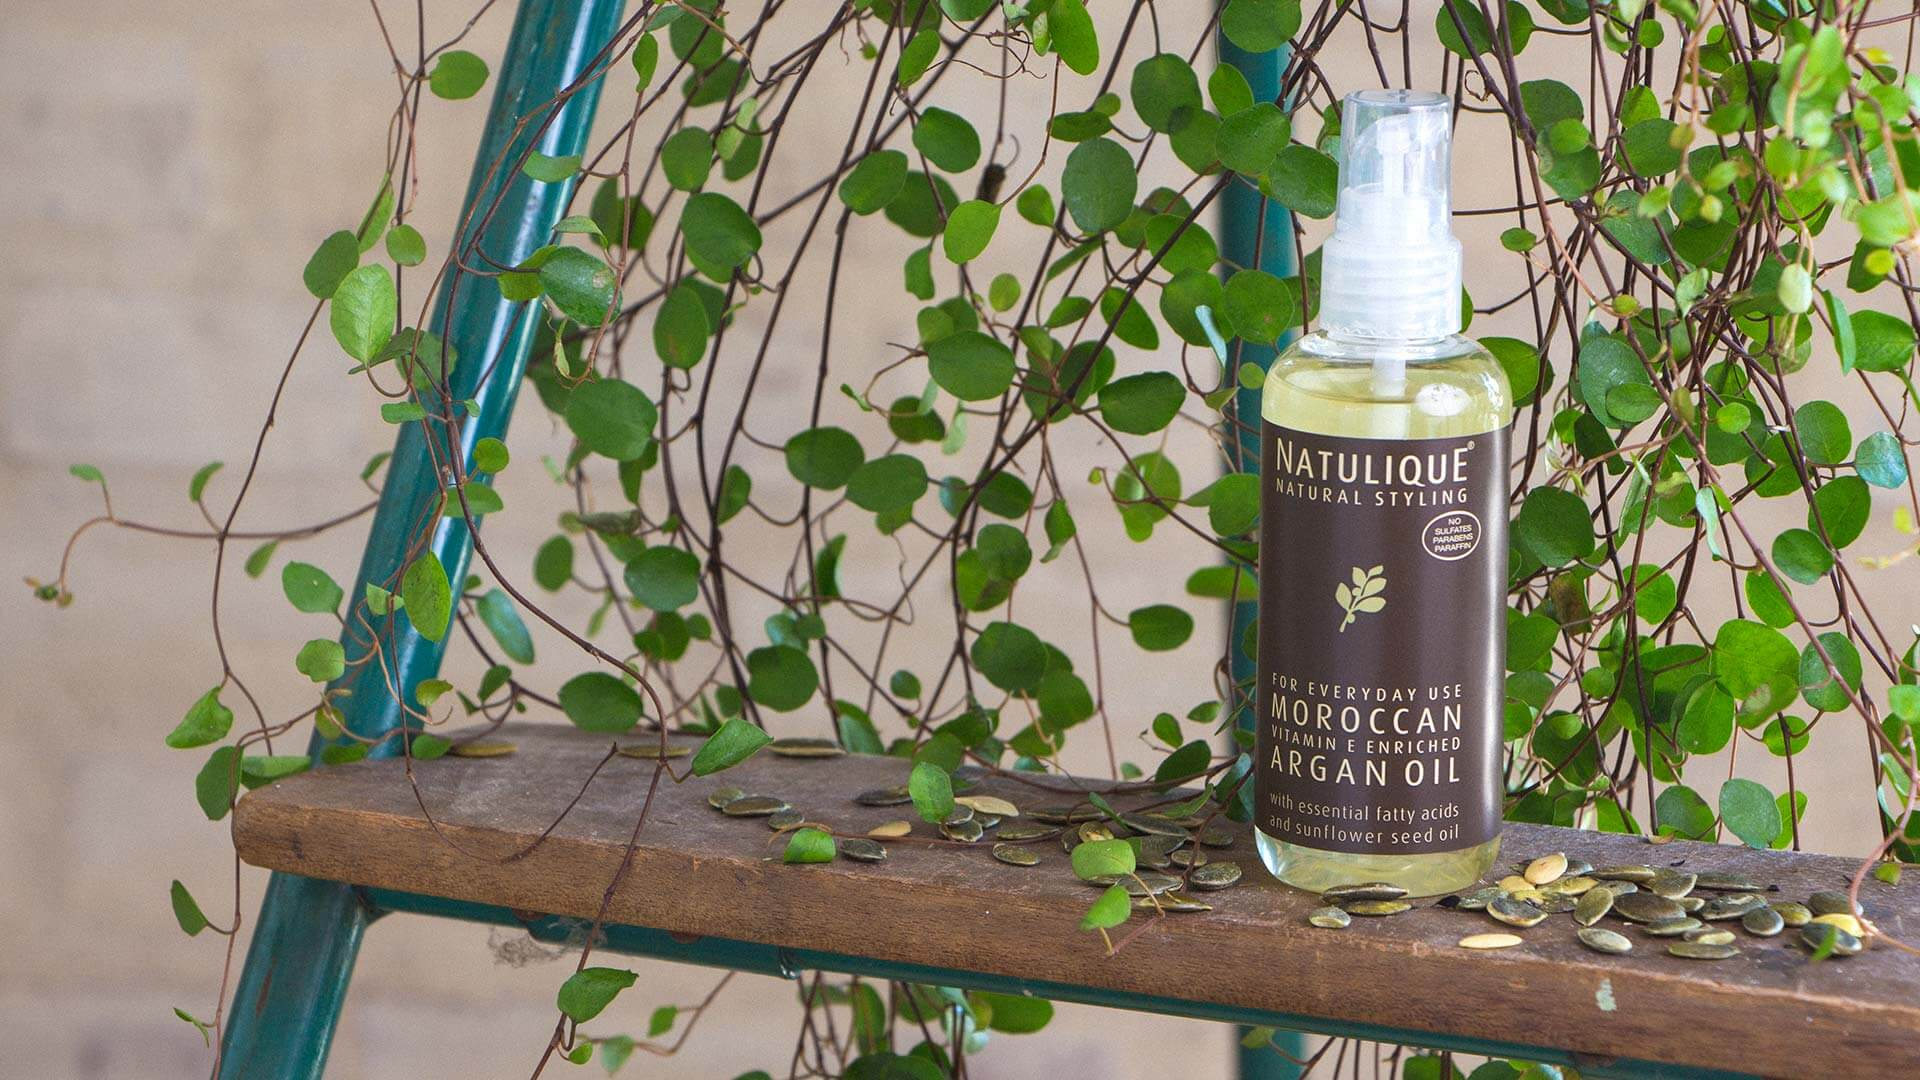 Moroccan Argan Oil NATULIQUE